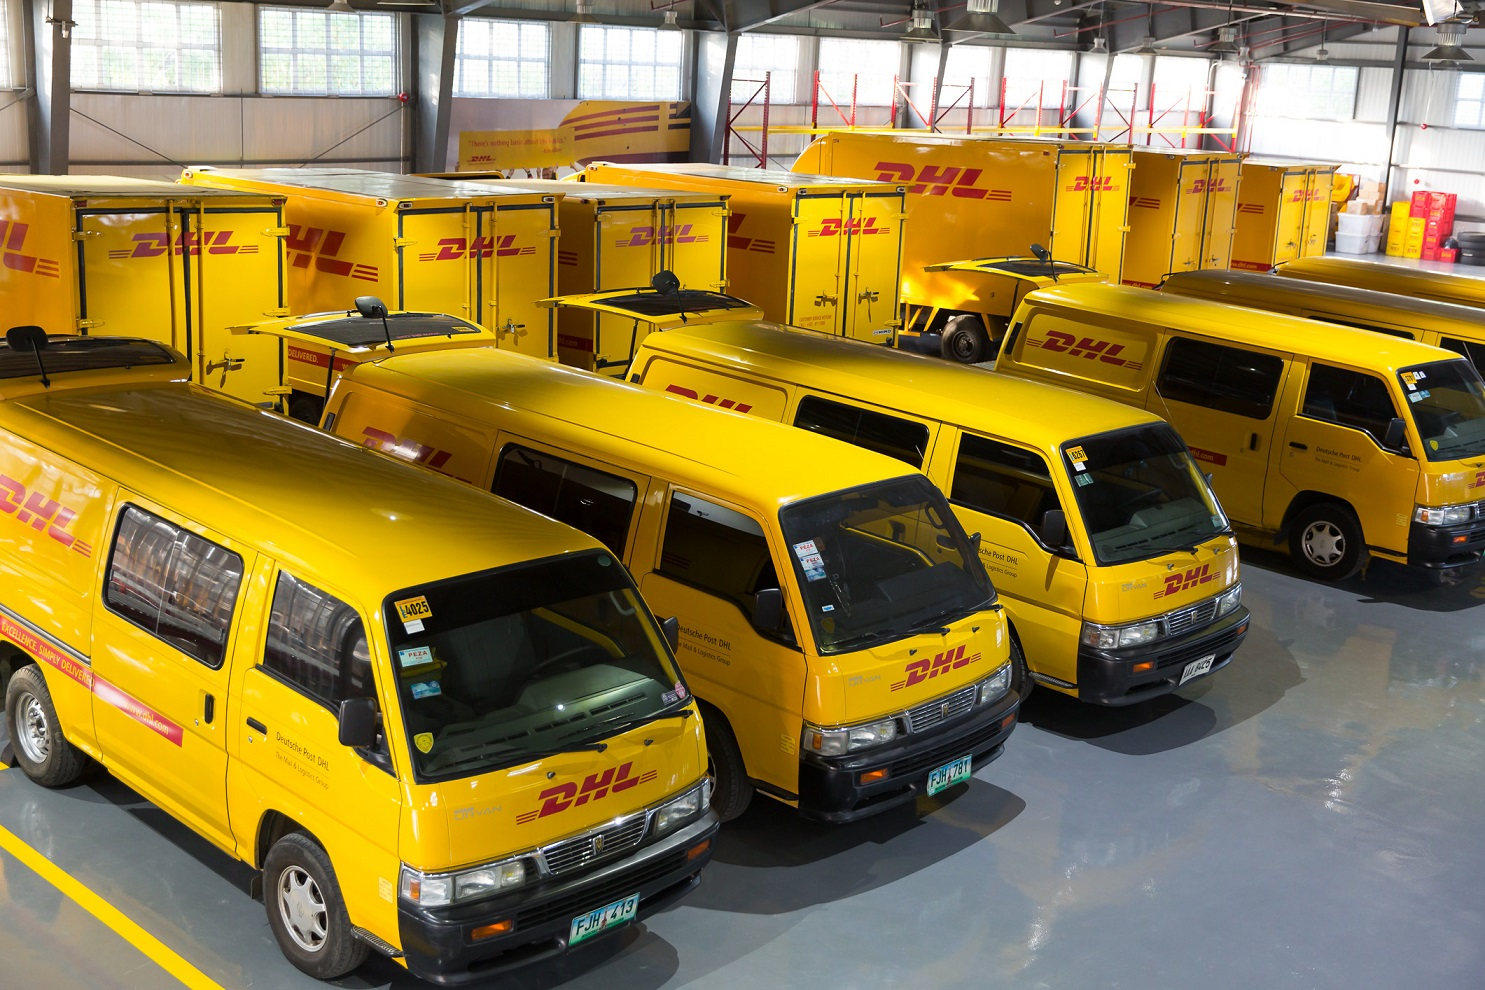 dhl background malaysia 4,568 reviews from dhl employees about dhl culture, salaries, benefits, work-life balance, management, job security, and more.